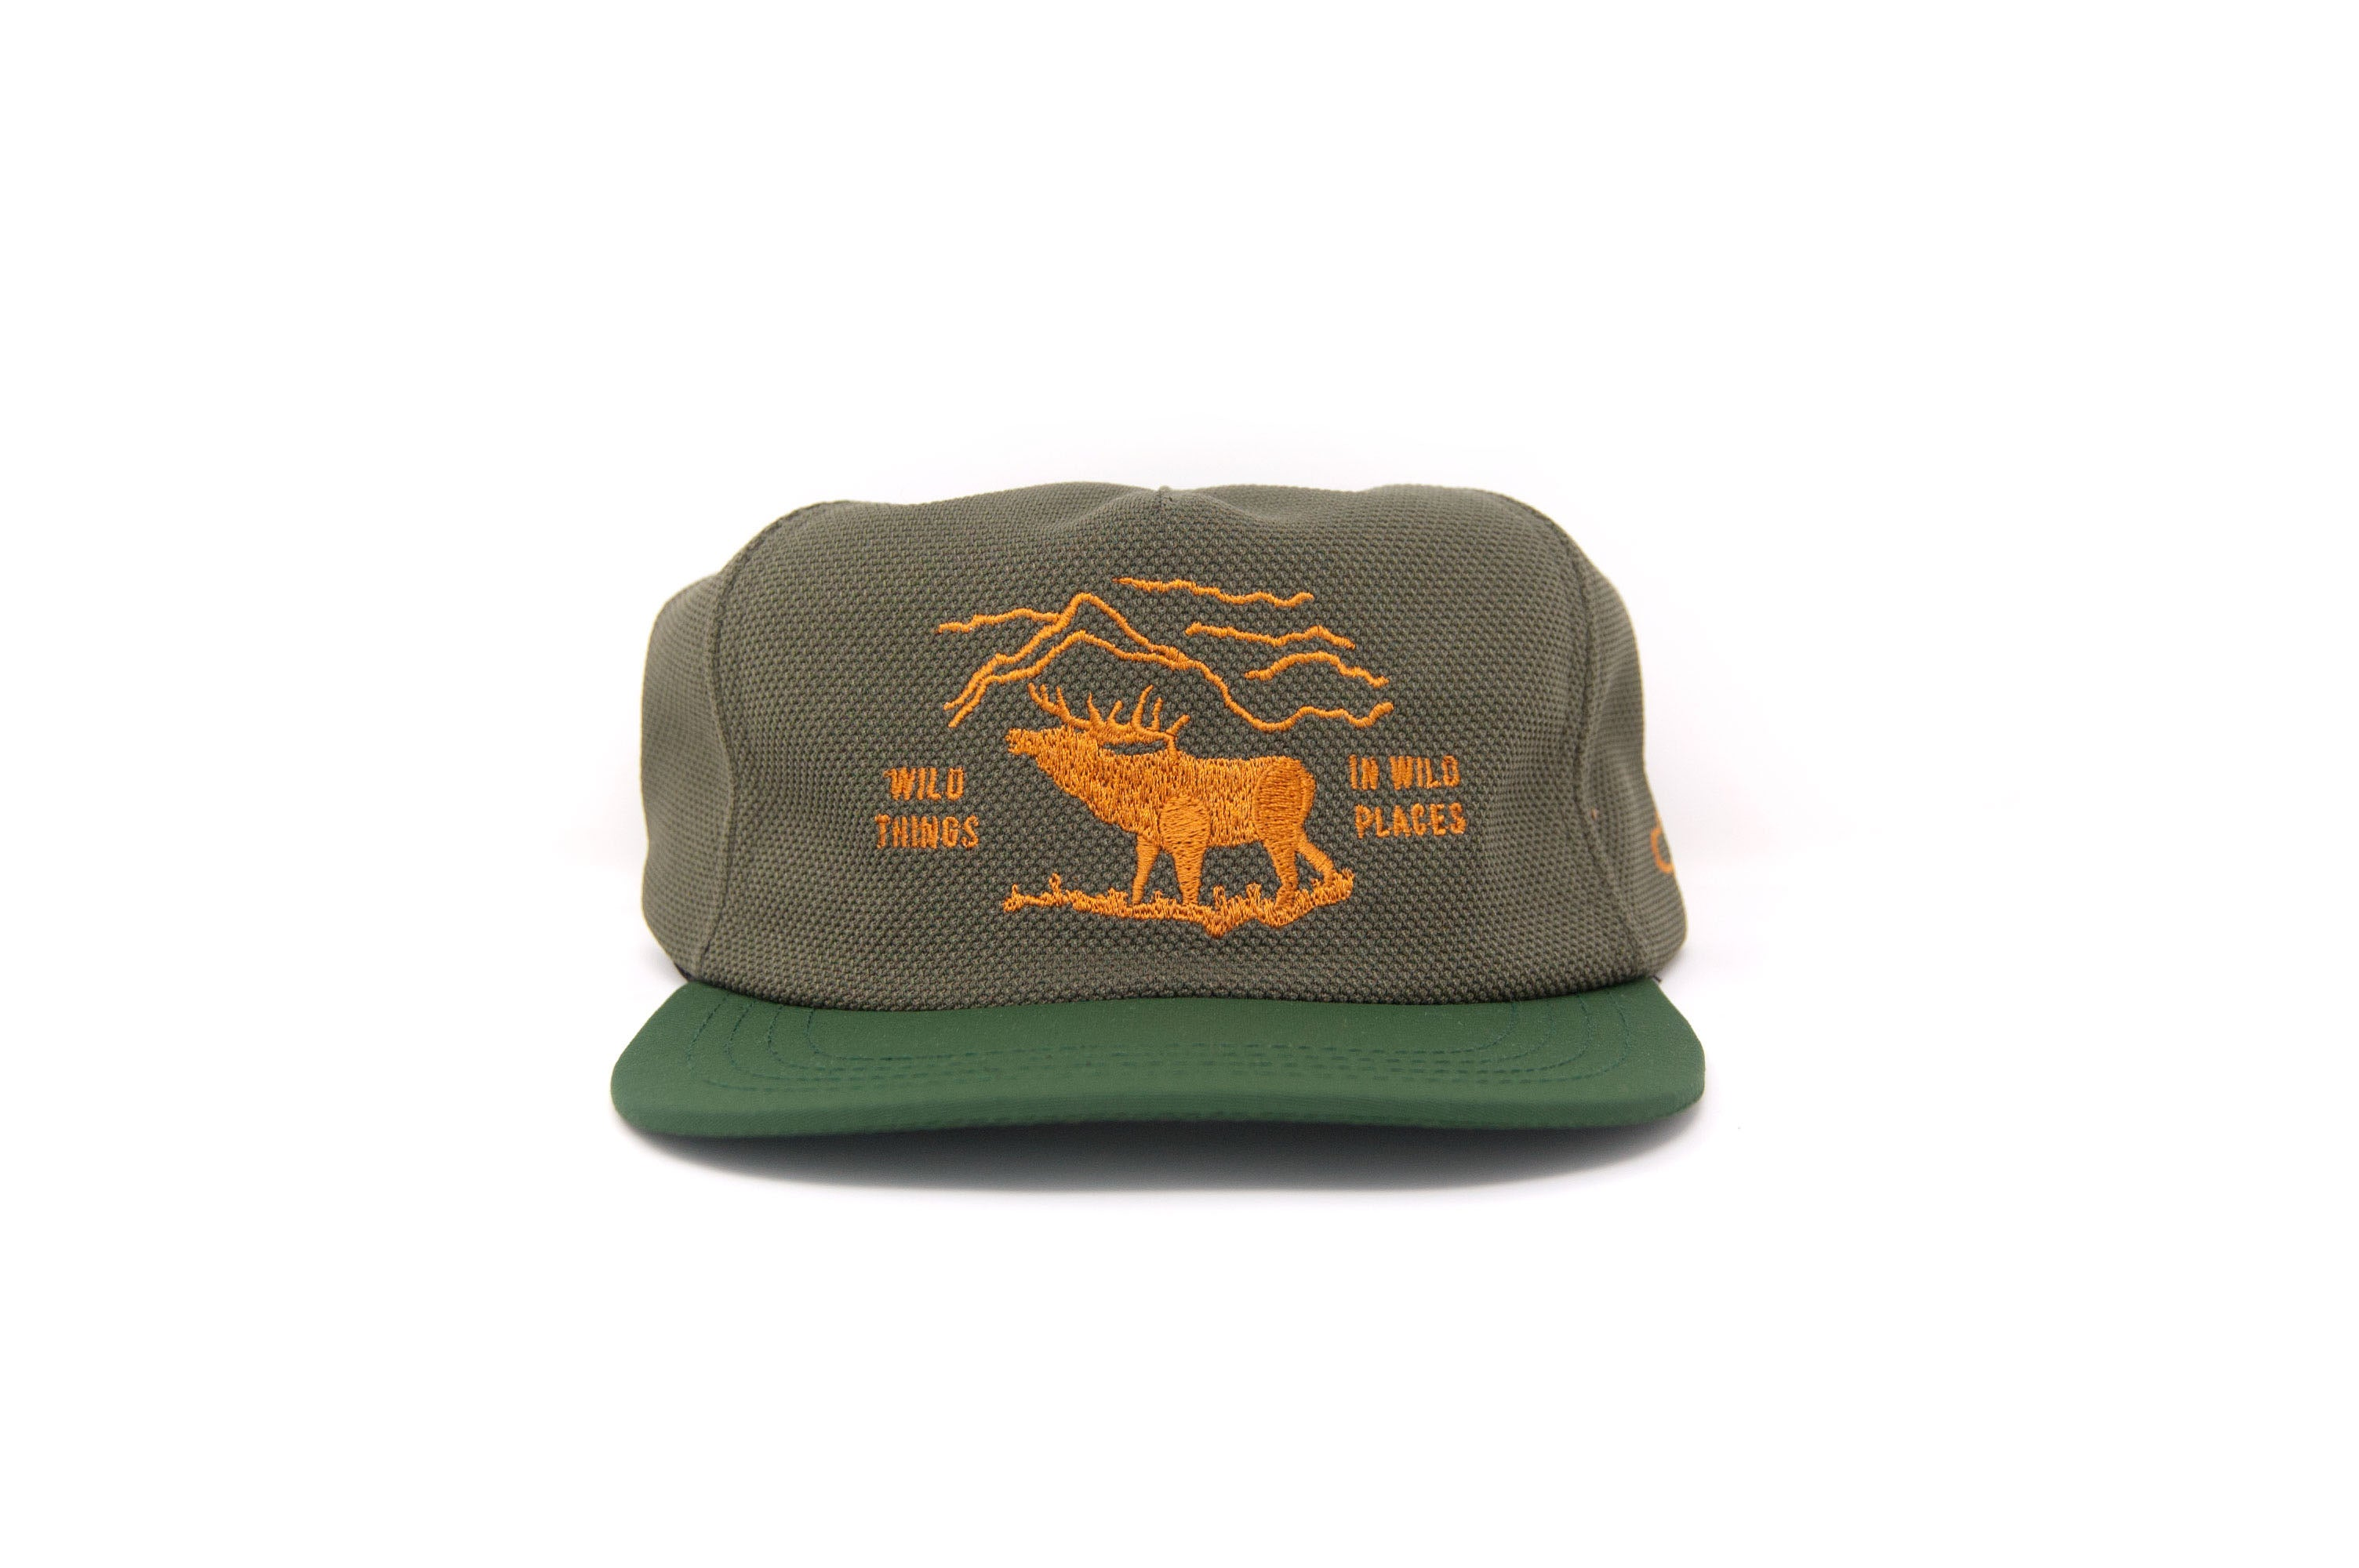 WILD PLACES Strapback - Olive